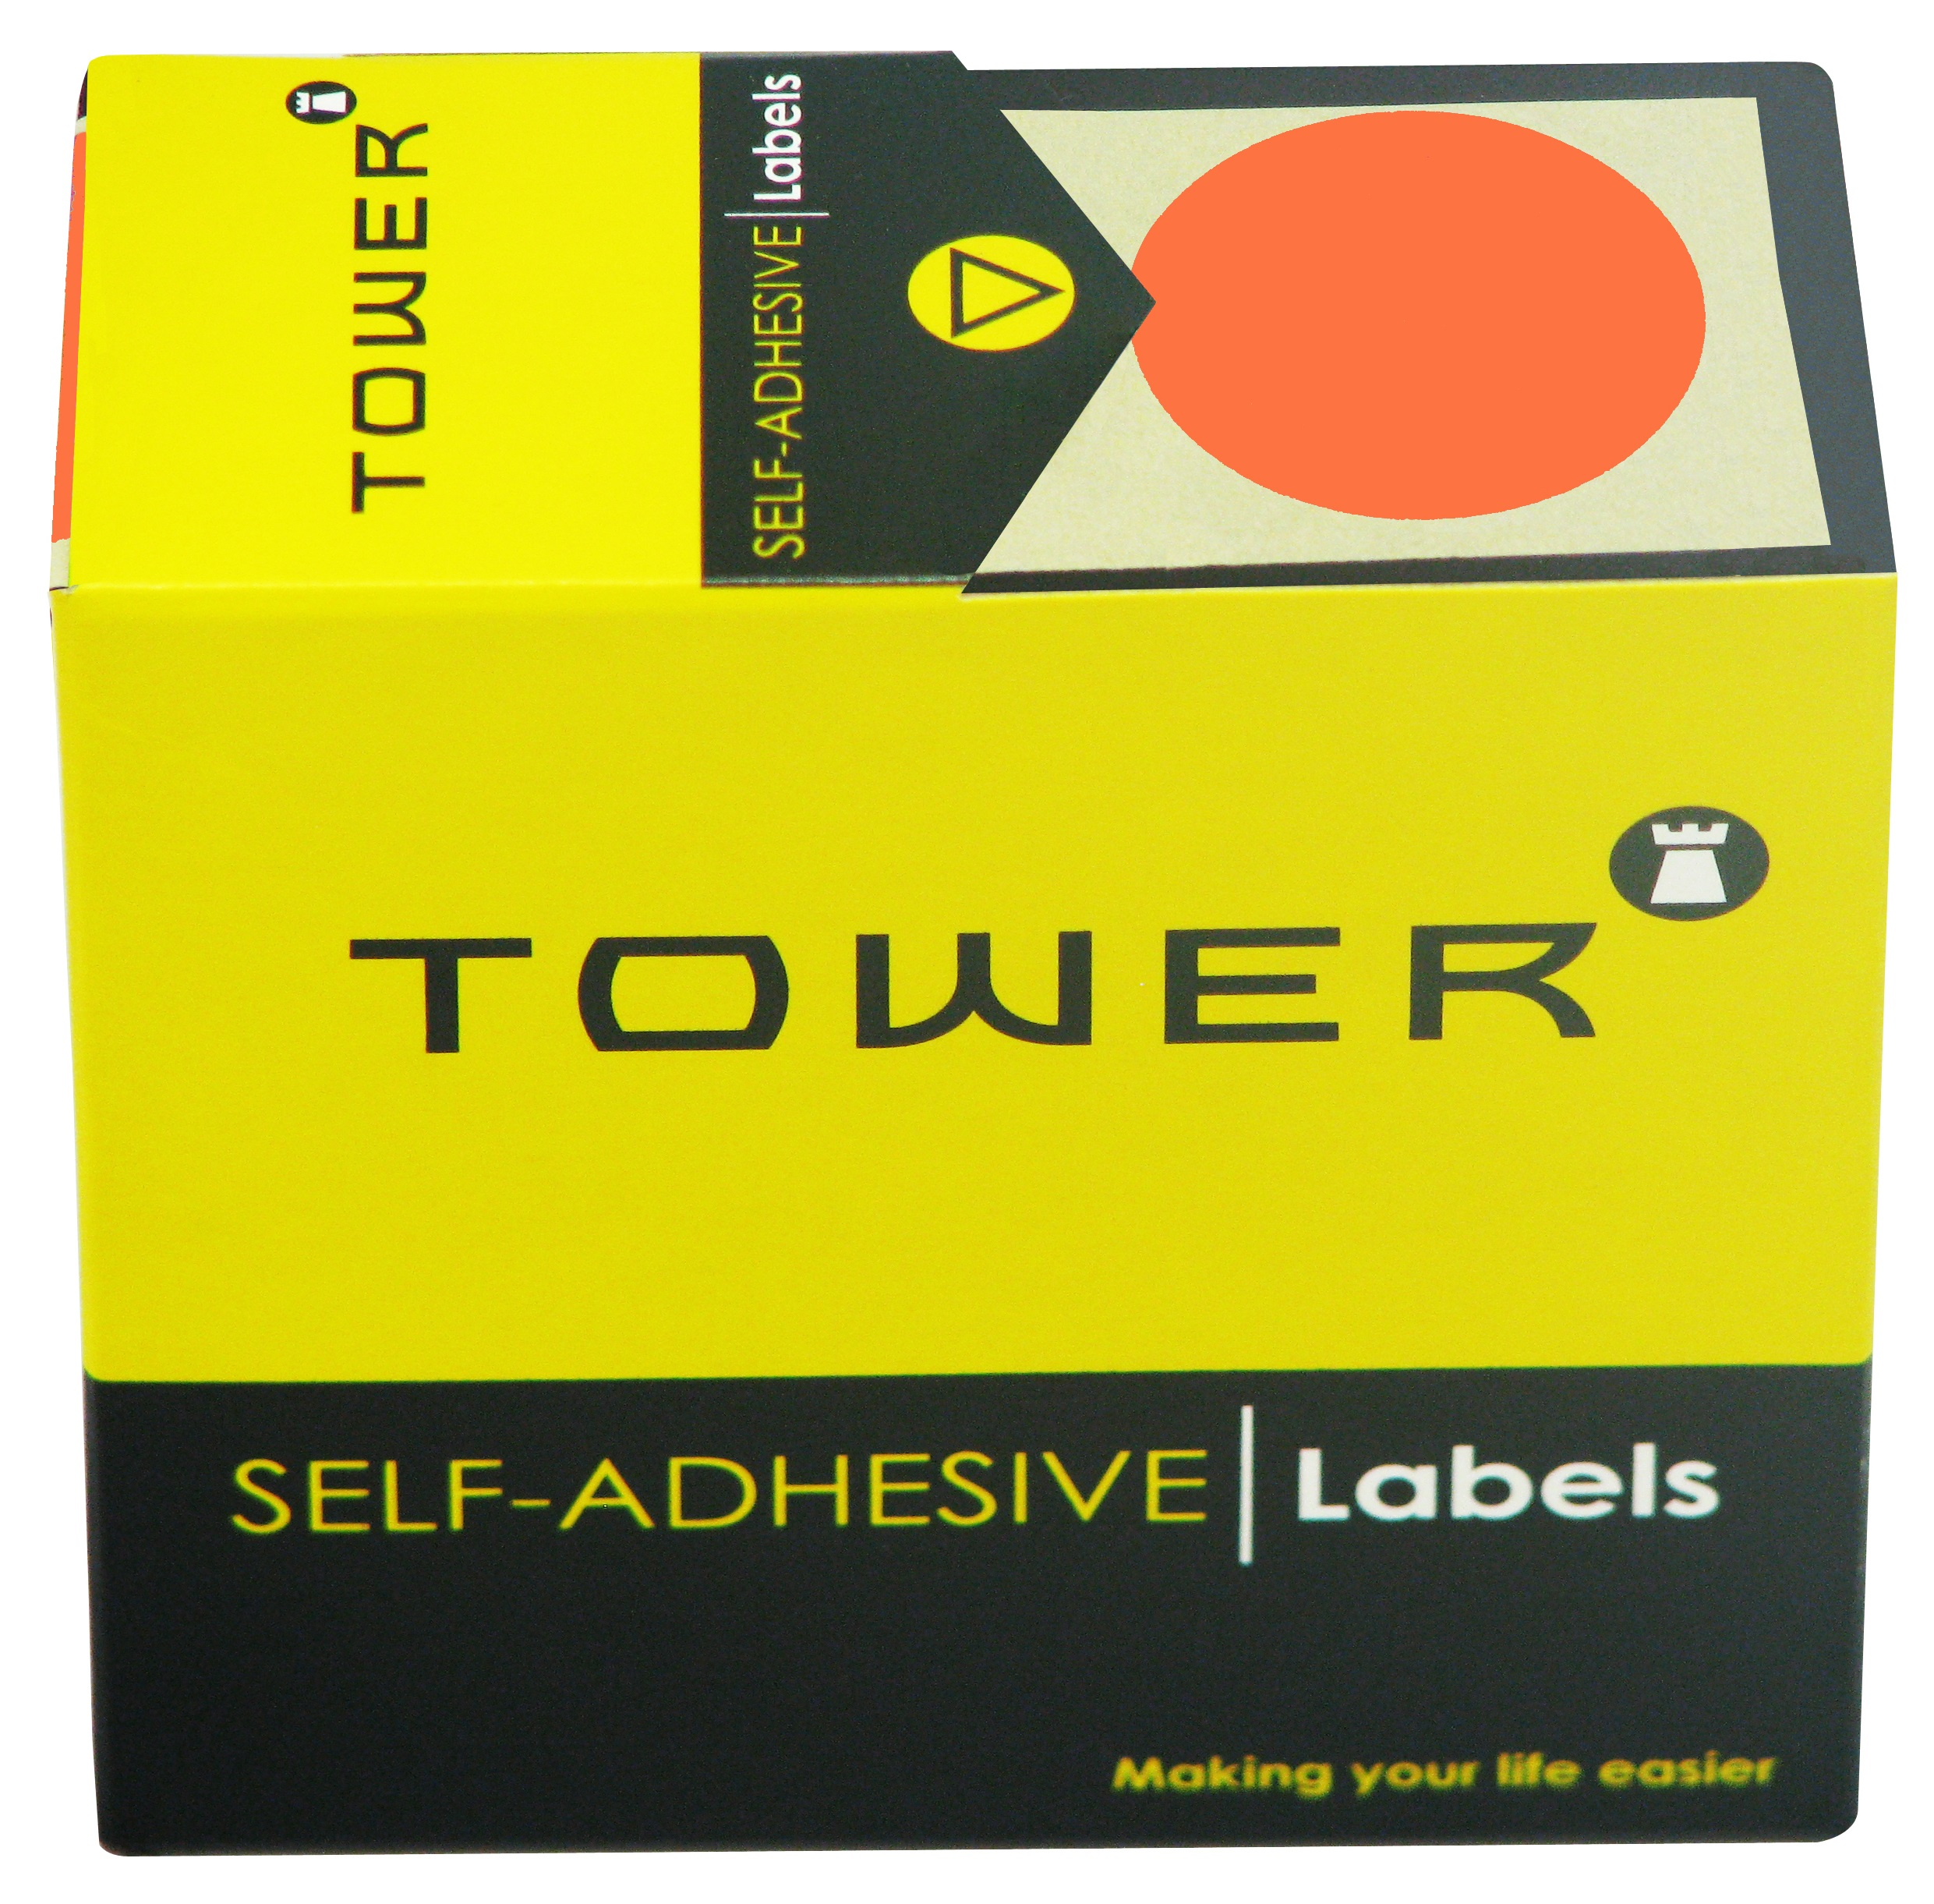 Tower C32 Label Flu Red